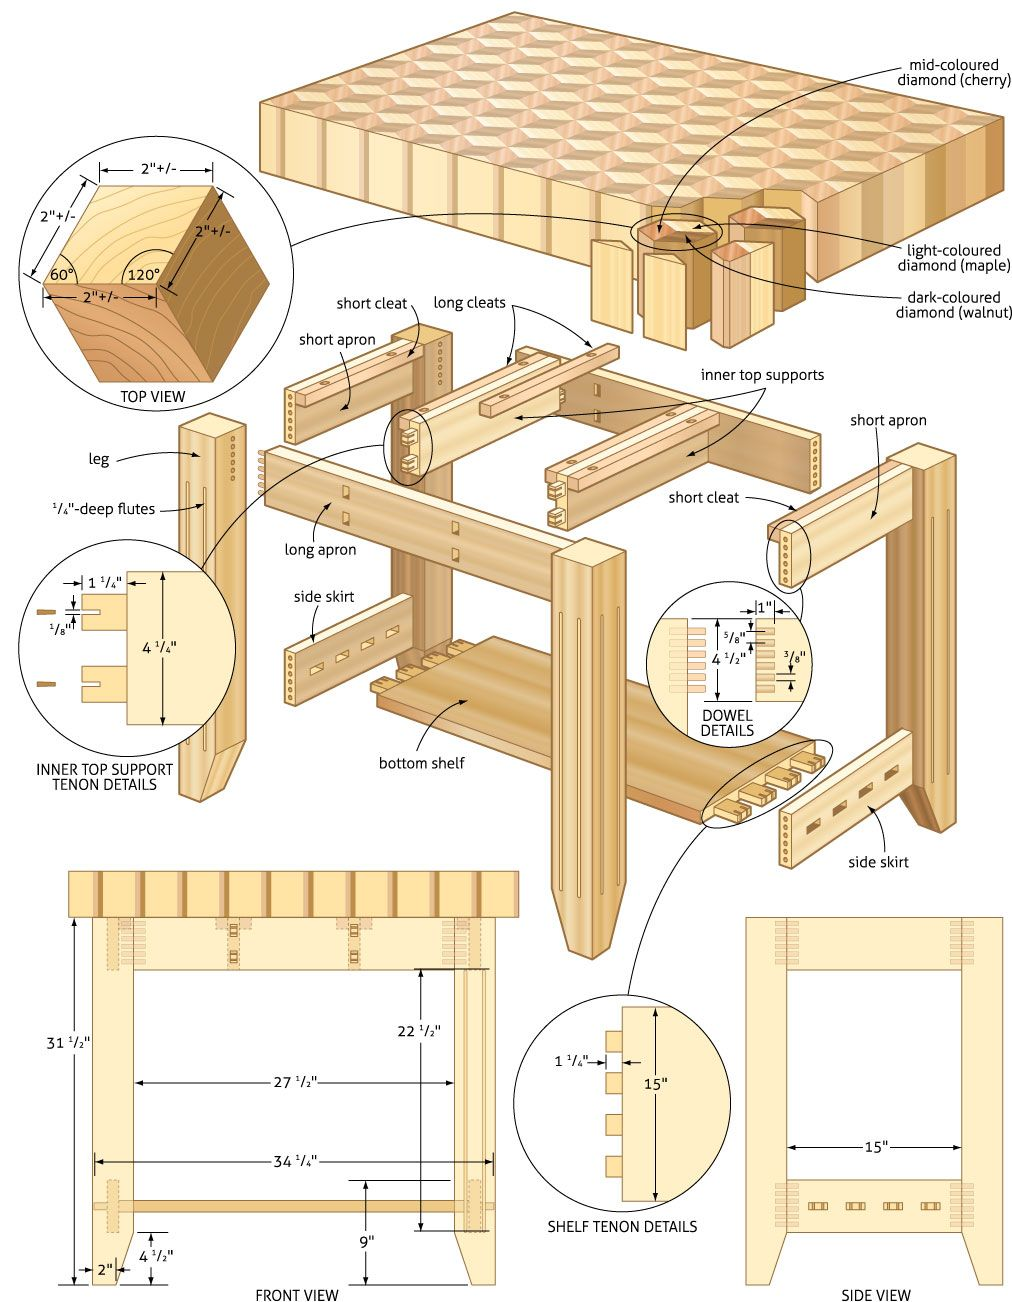 butcher block kitchen table Teds Woodworking Review Teds Wood Working offers 16 woodworking plans and blueprints for beginners to advanced